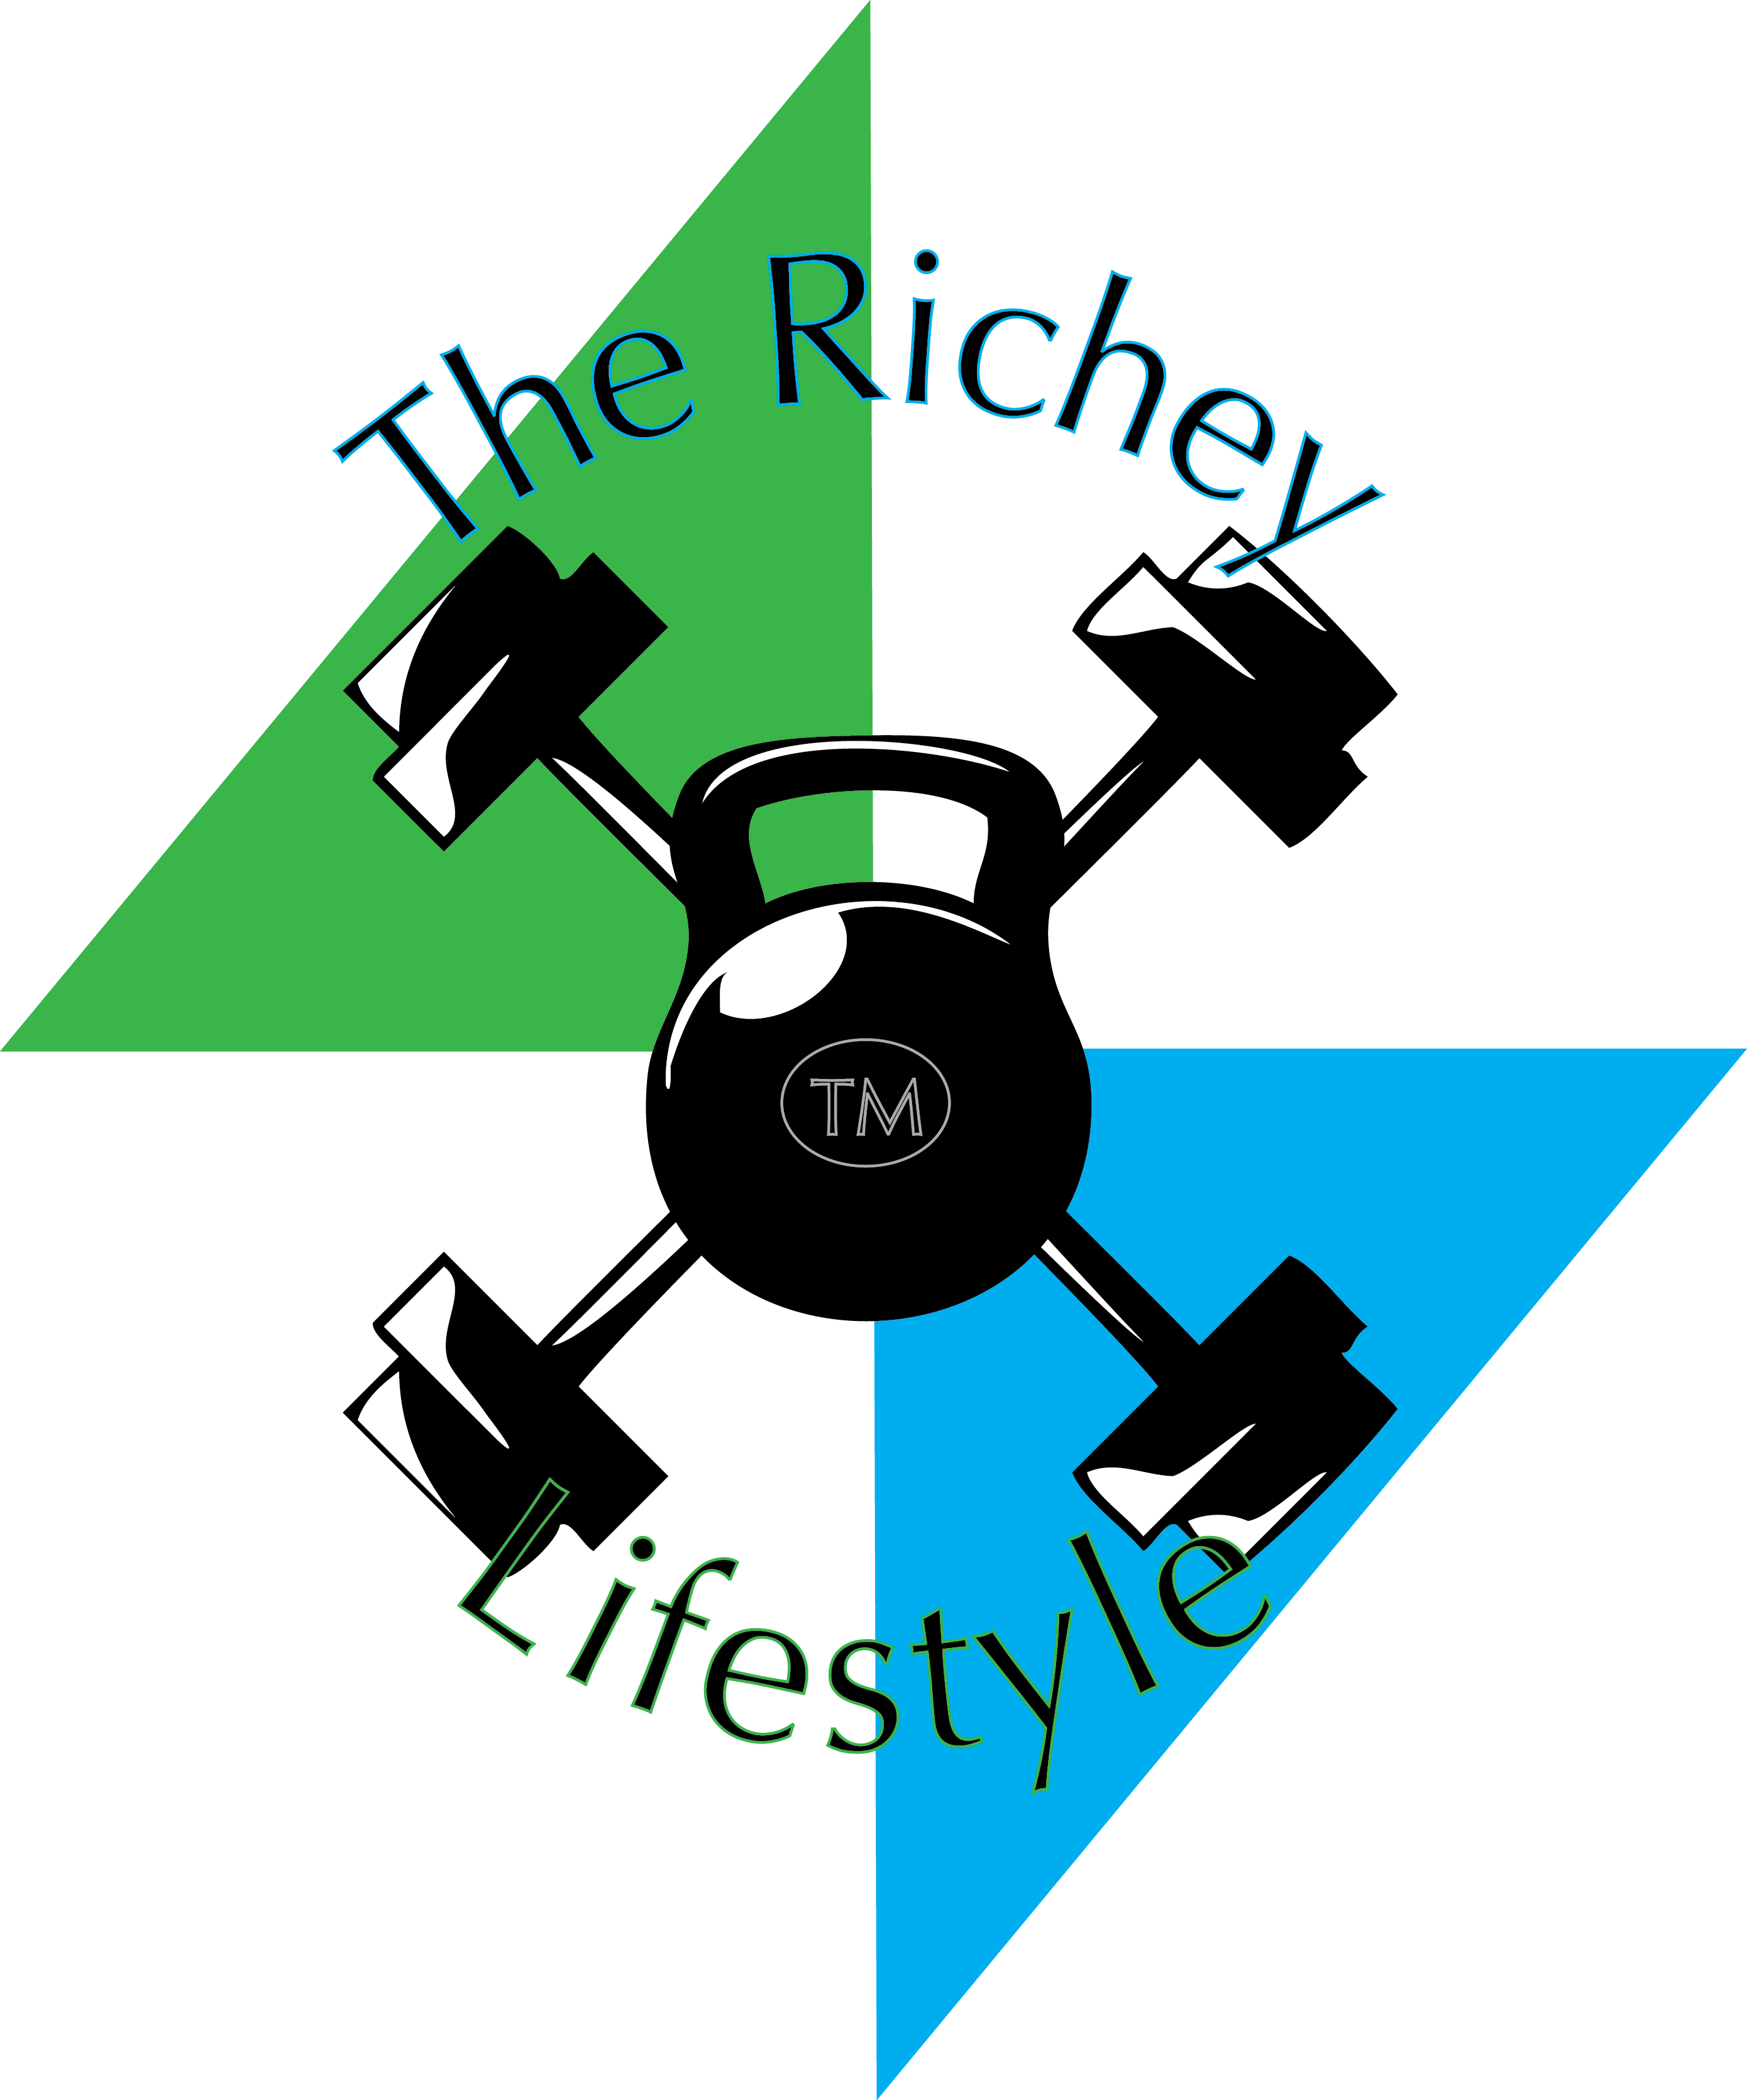 Rich Exercise: The Richey Lifestyle